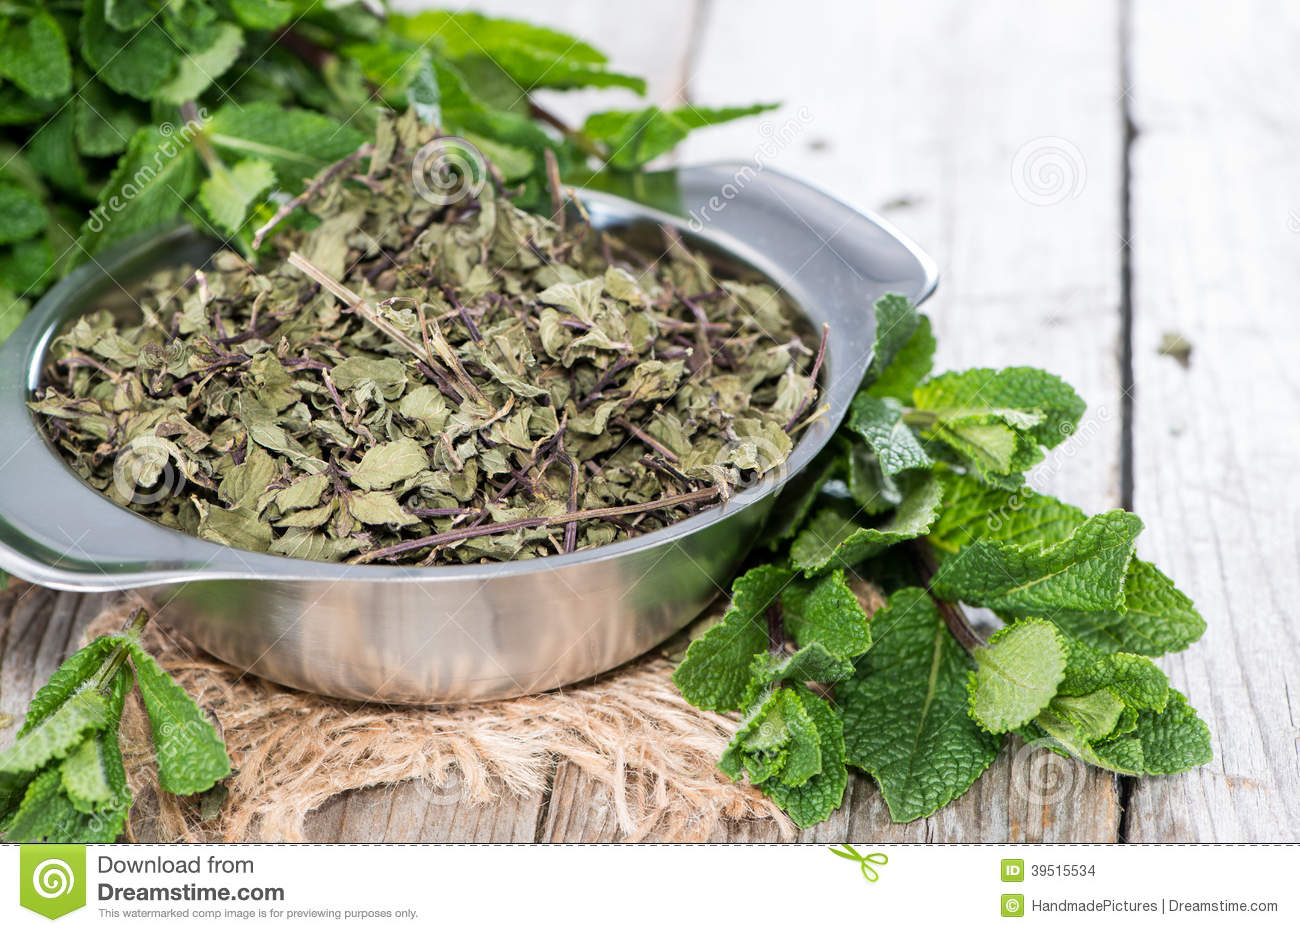 Portion of dried Mint